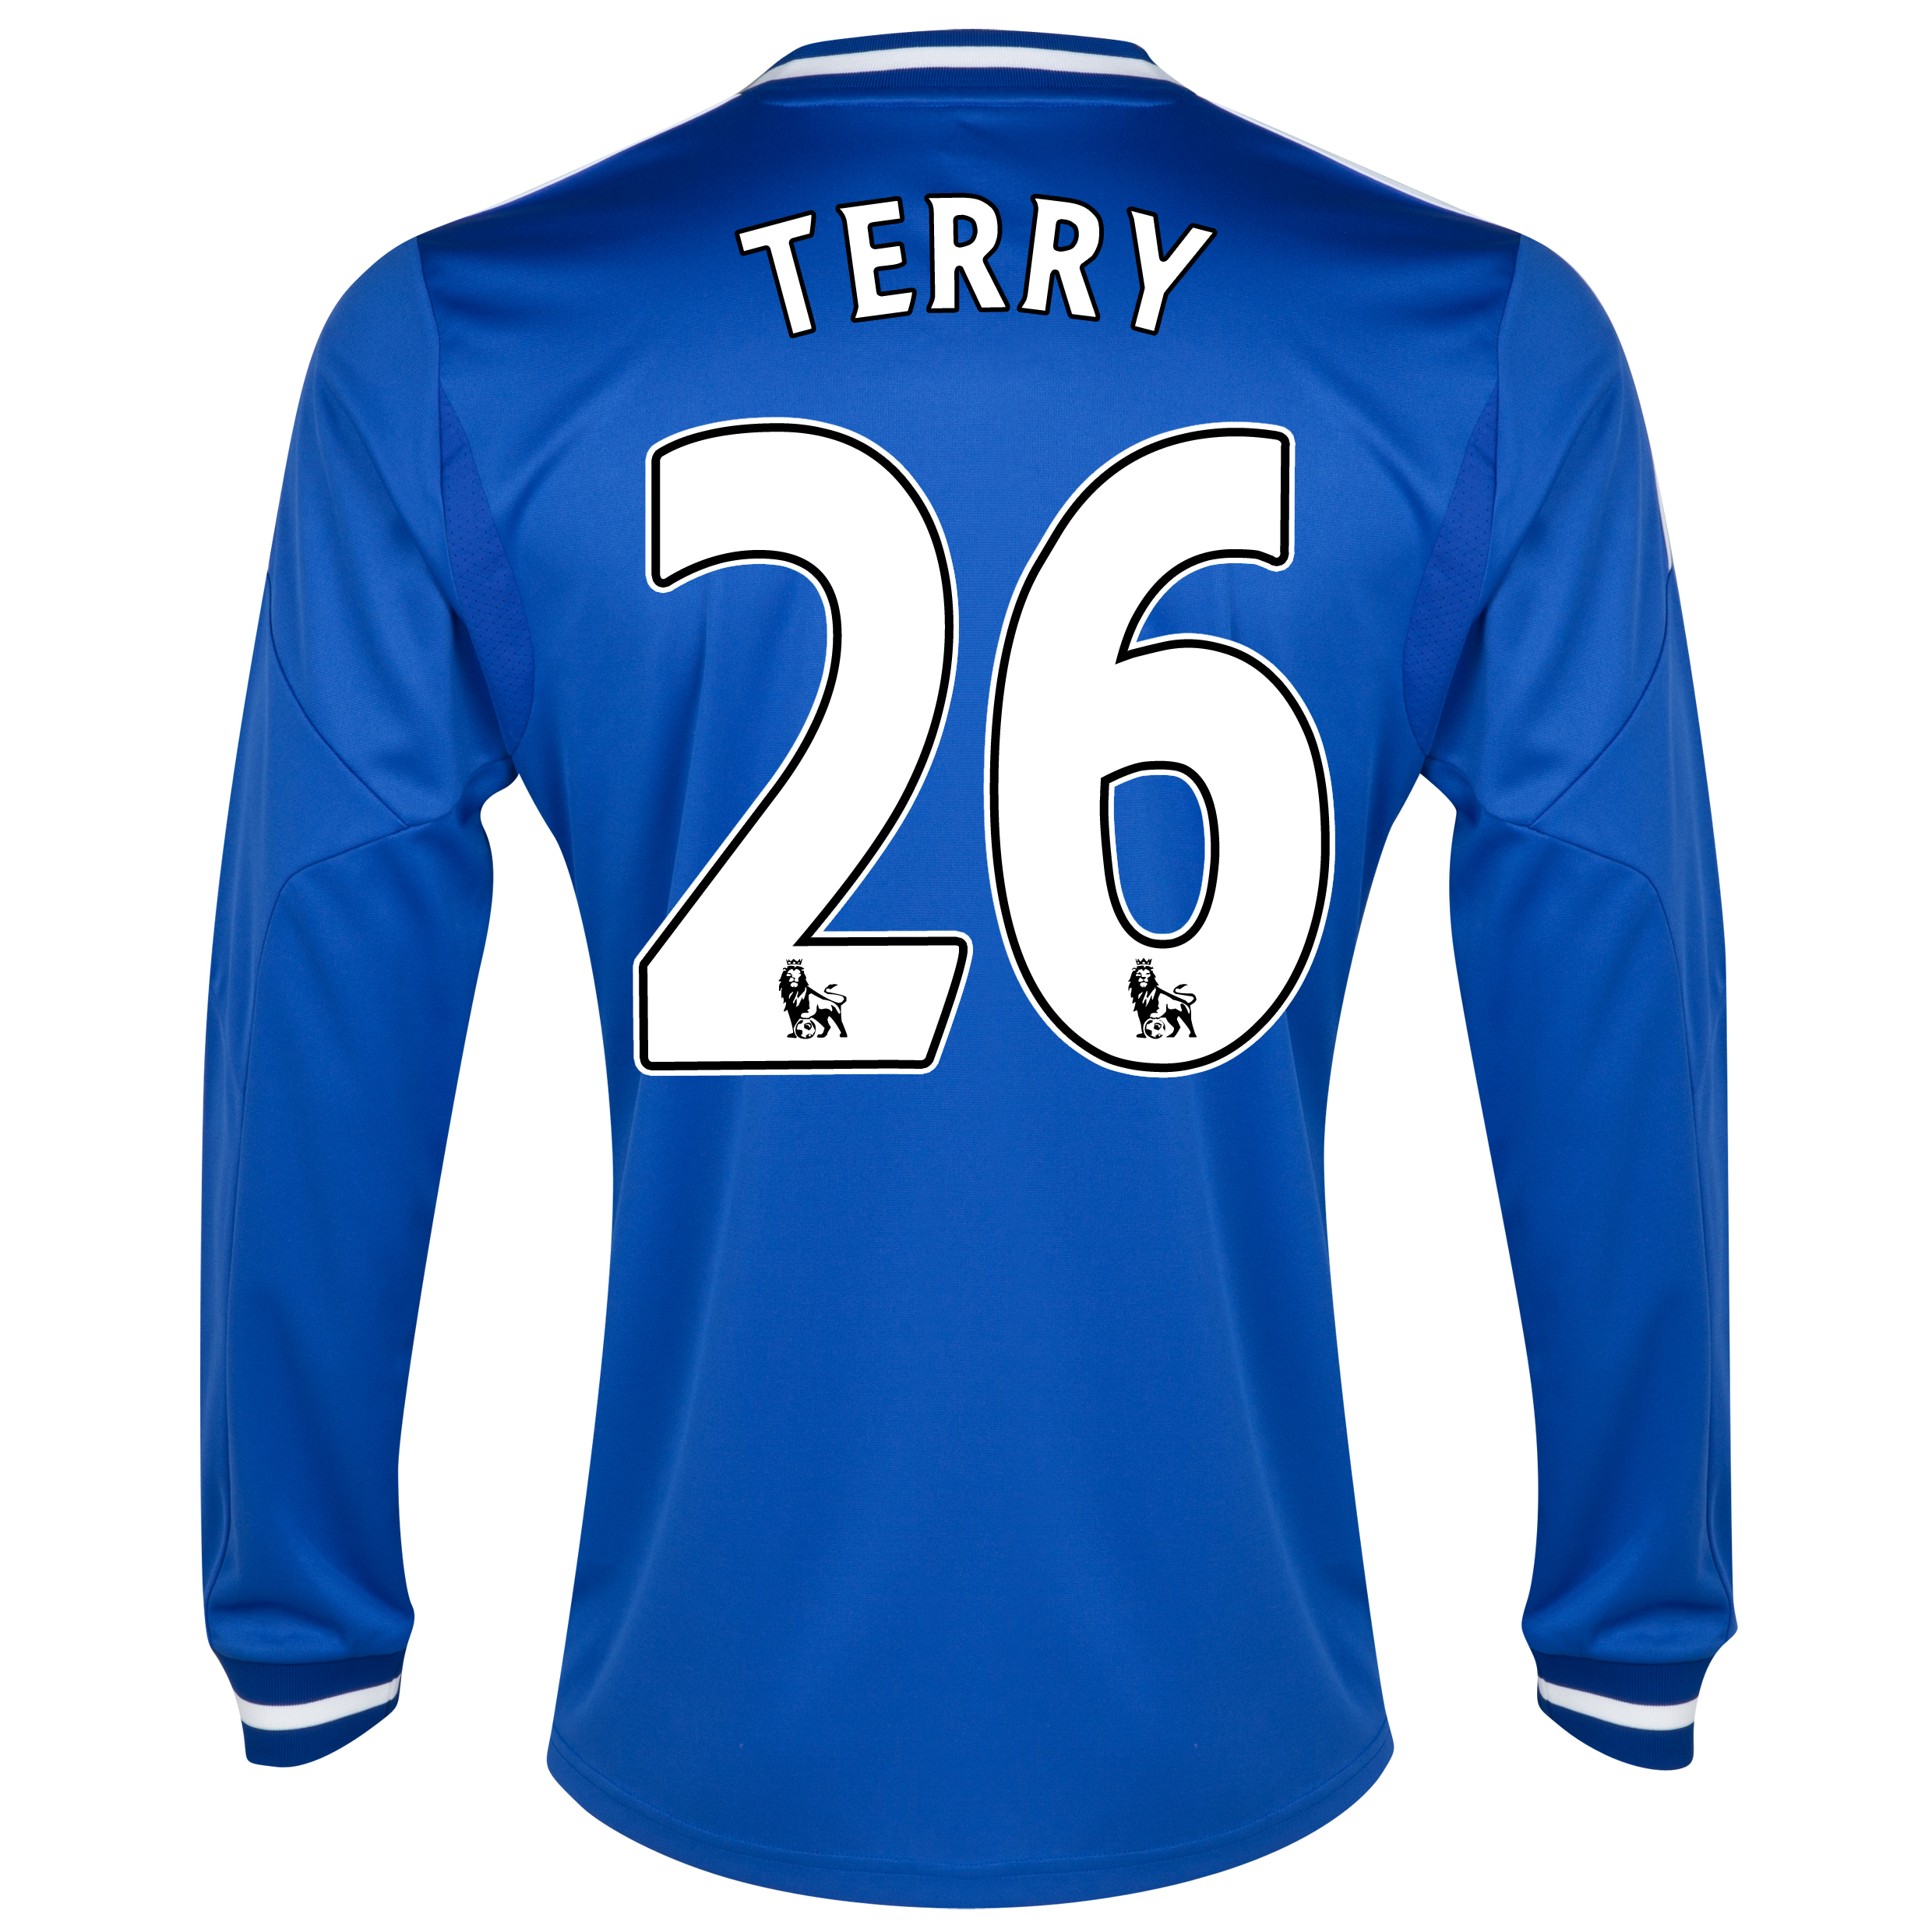 Chelsea Home Shirt 2013/14 - Long Sleeve - Kids with Terry 26 printing